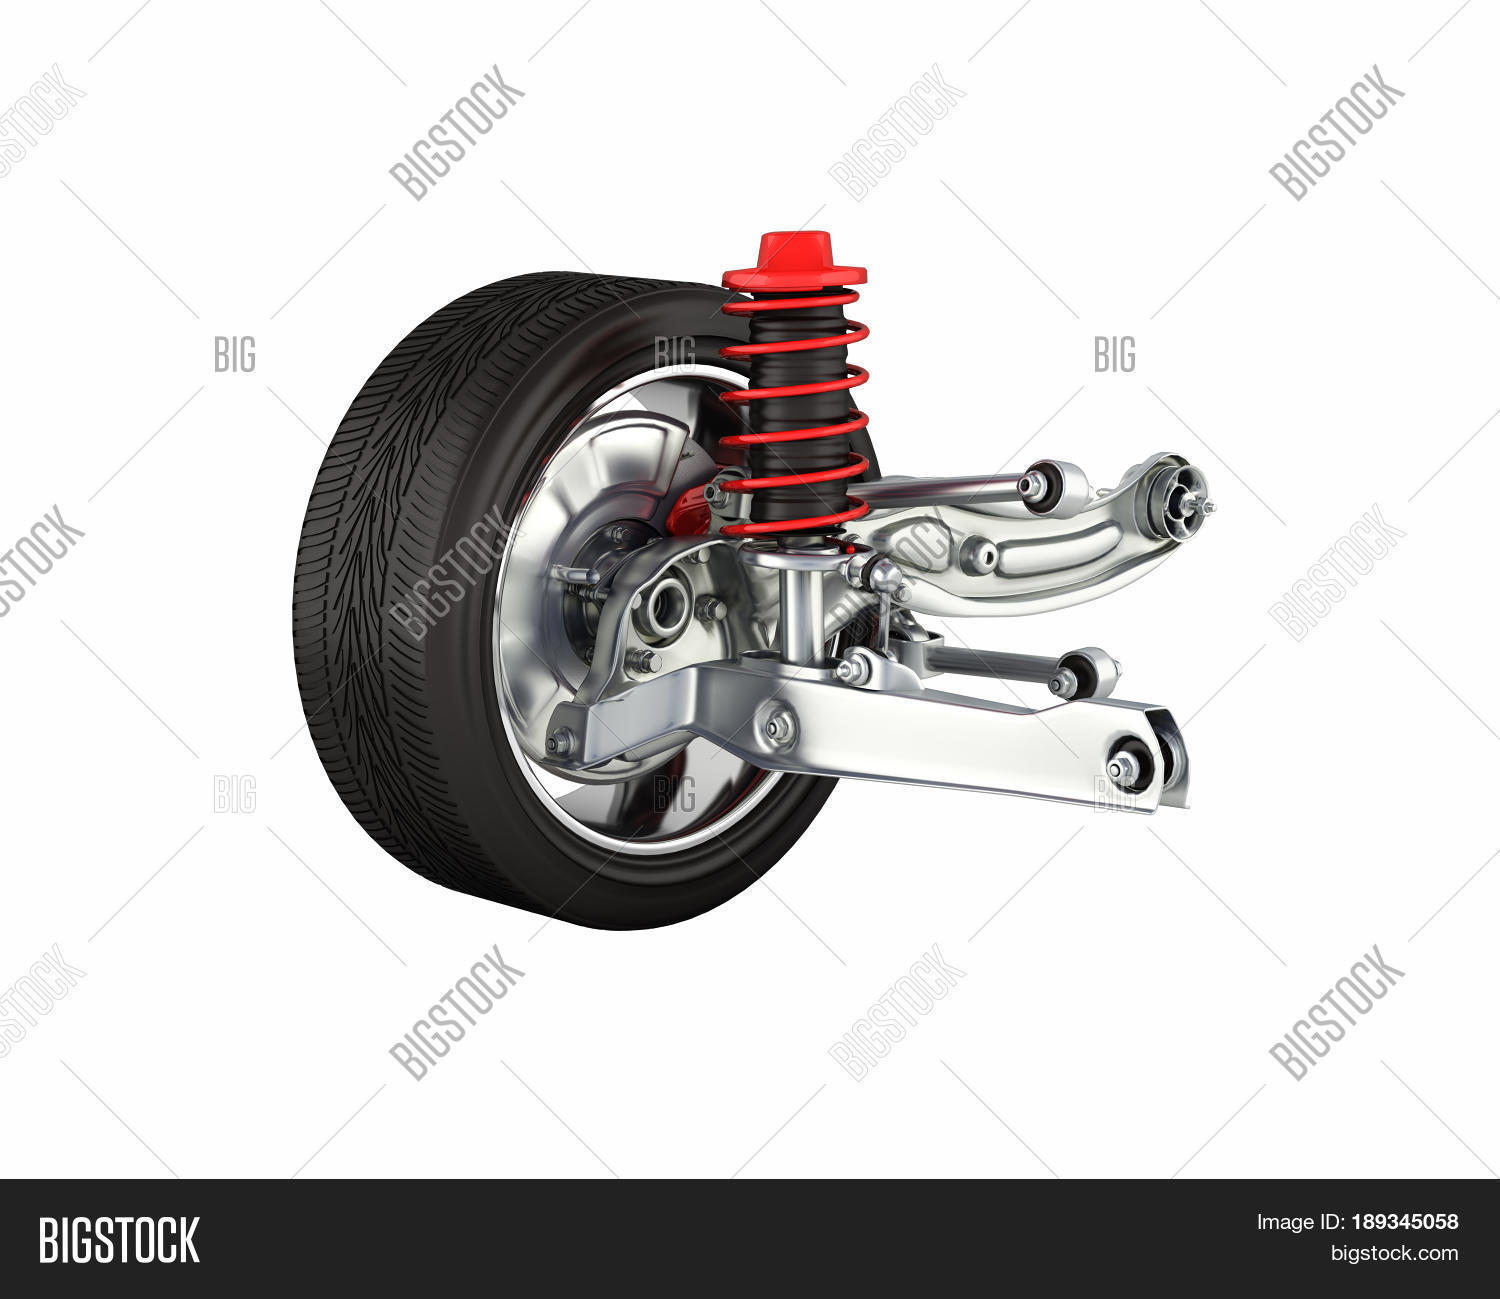 suspension car wheel without shadow image photo bigstock. Black Bedroom Furniture Sets. Home Design Ideas